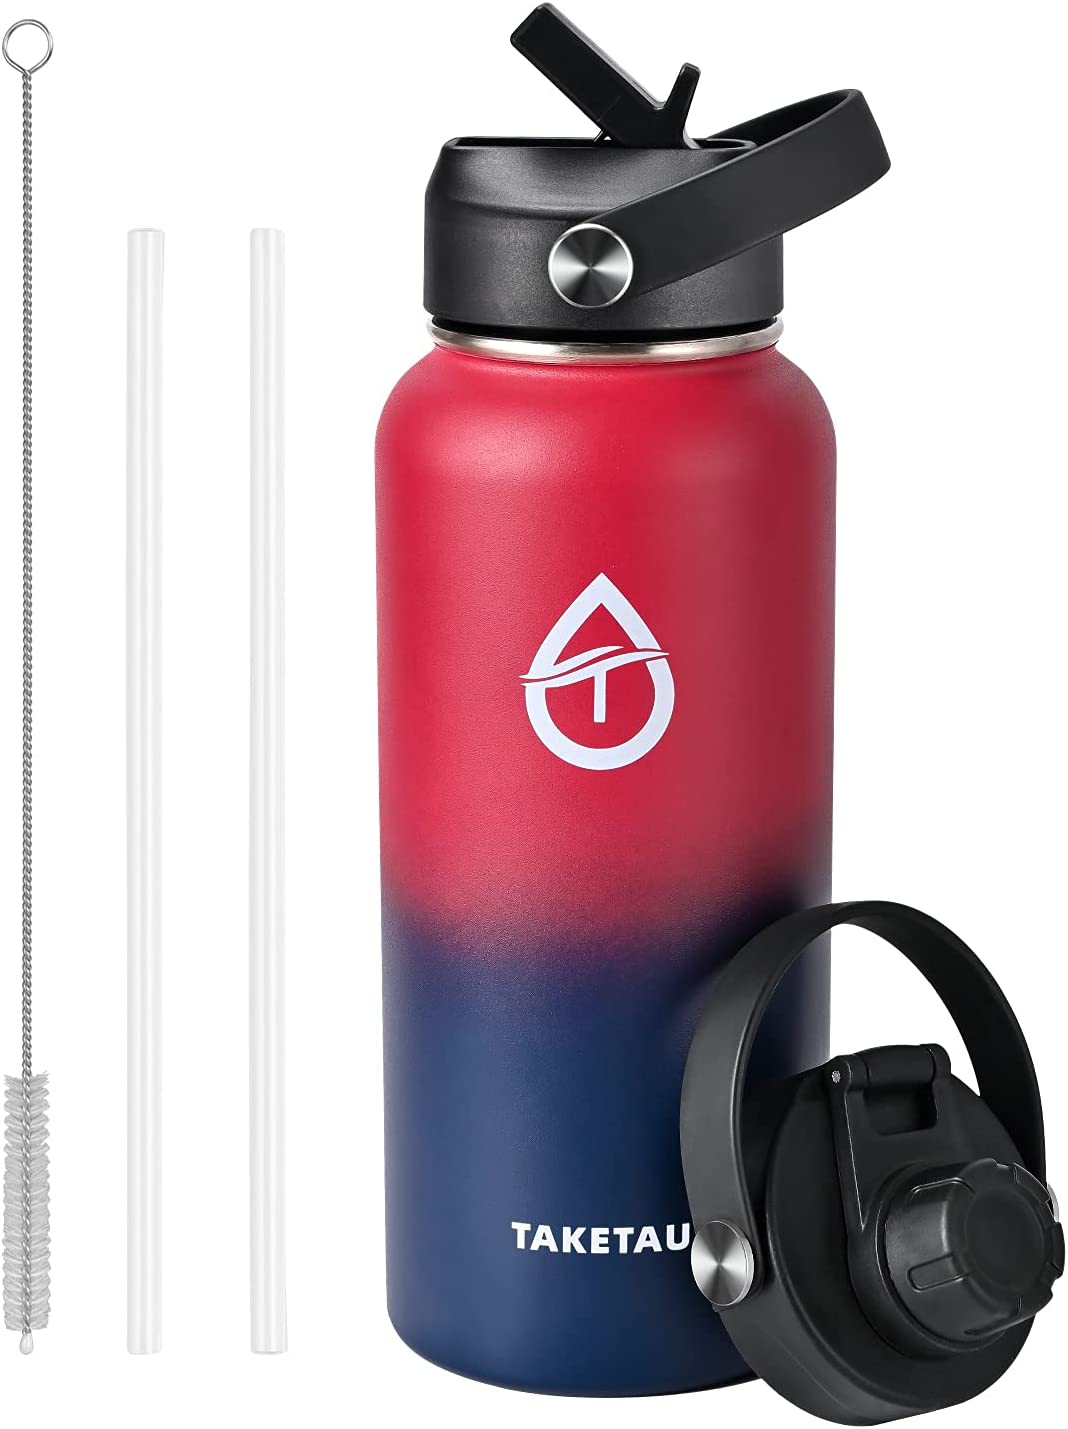 TAKETAU Stainless Steel Insulated Sports Water Bottle with Straw Cap & Spout Lid, 32 oz Double Wall Vacuum Wide Mouth Leakproof Water Bottle, Keep Drinks Cold or Hot (Wine Red/Violet, 32 Oz)